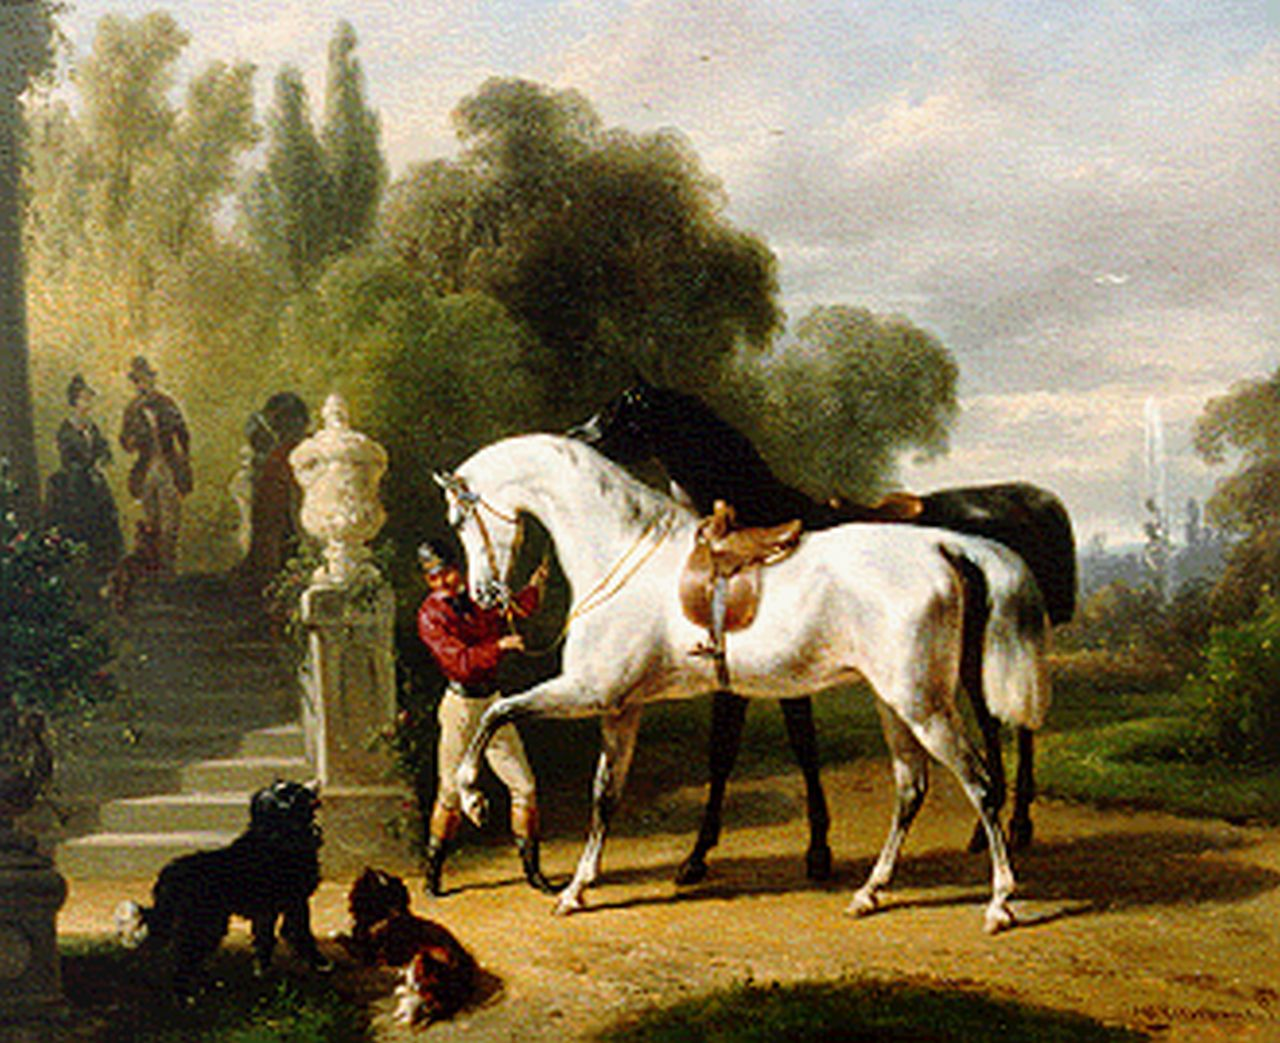 Verschuur W.  | Wouterus Verschuur, Preparing for a ride, oil on panel 23.3 x 28.3 cm, signed l.r.